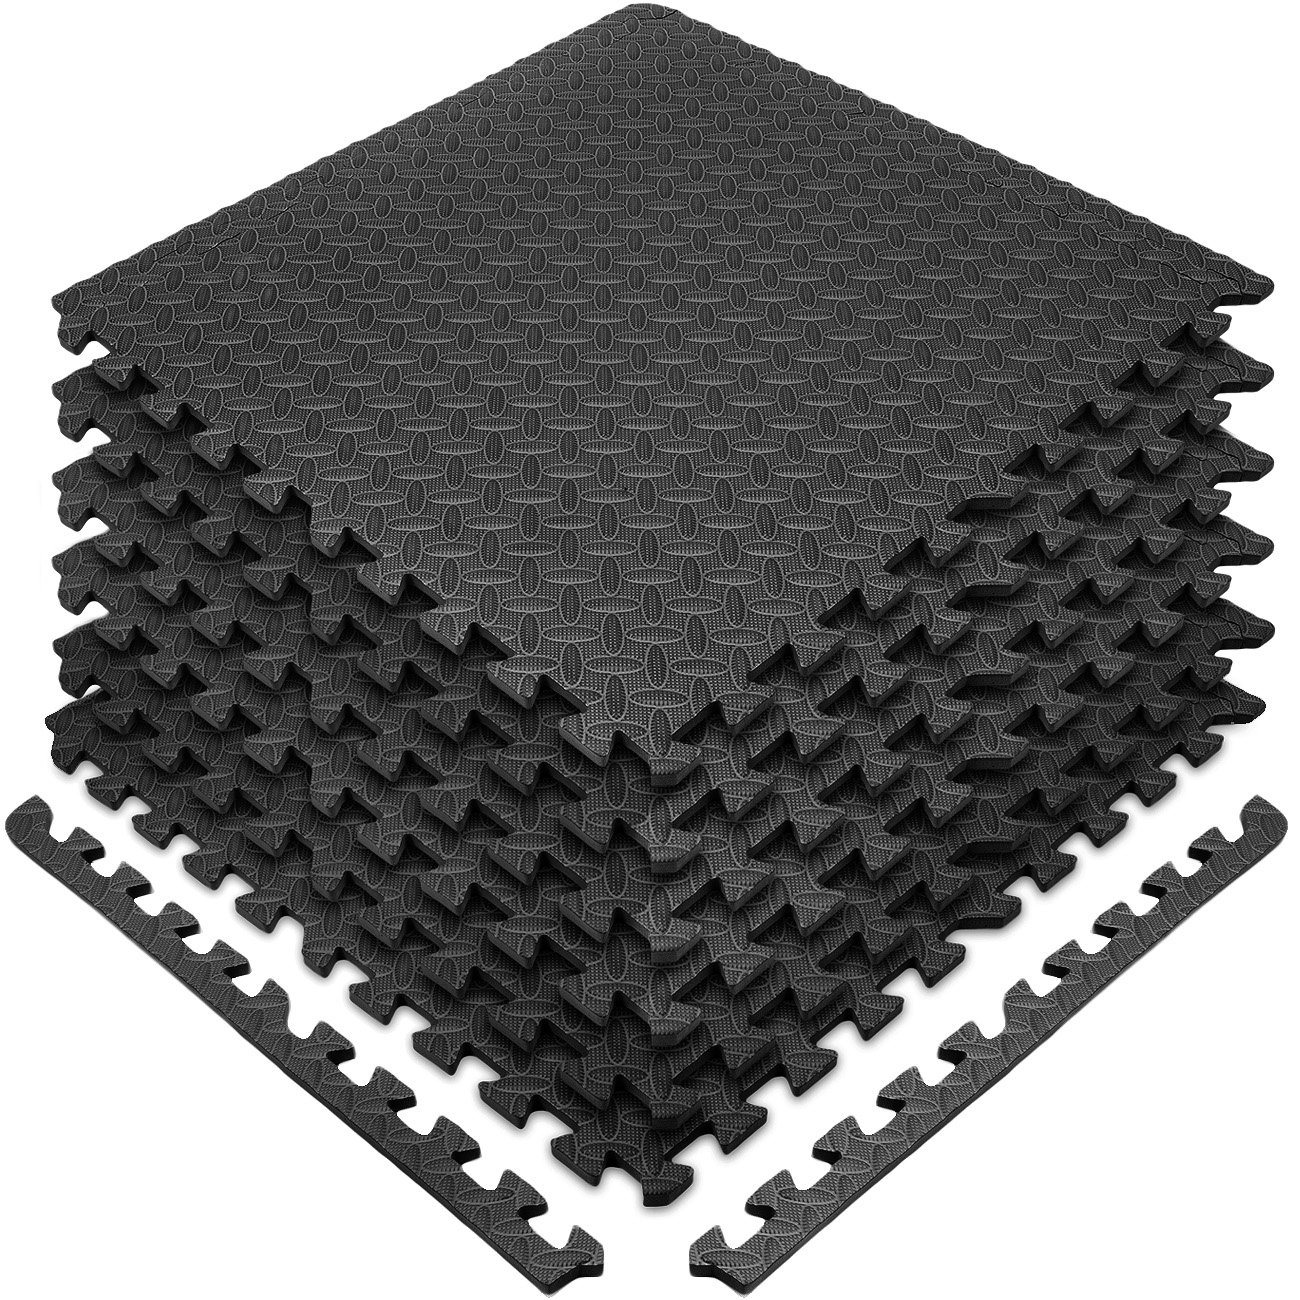 Sivan Health and Fitness Puzzle Exercise Mat EVA Foam Interlocking Tiles (Black)